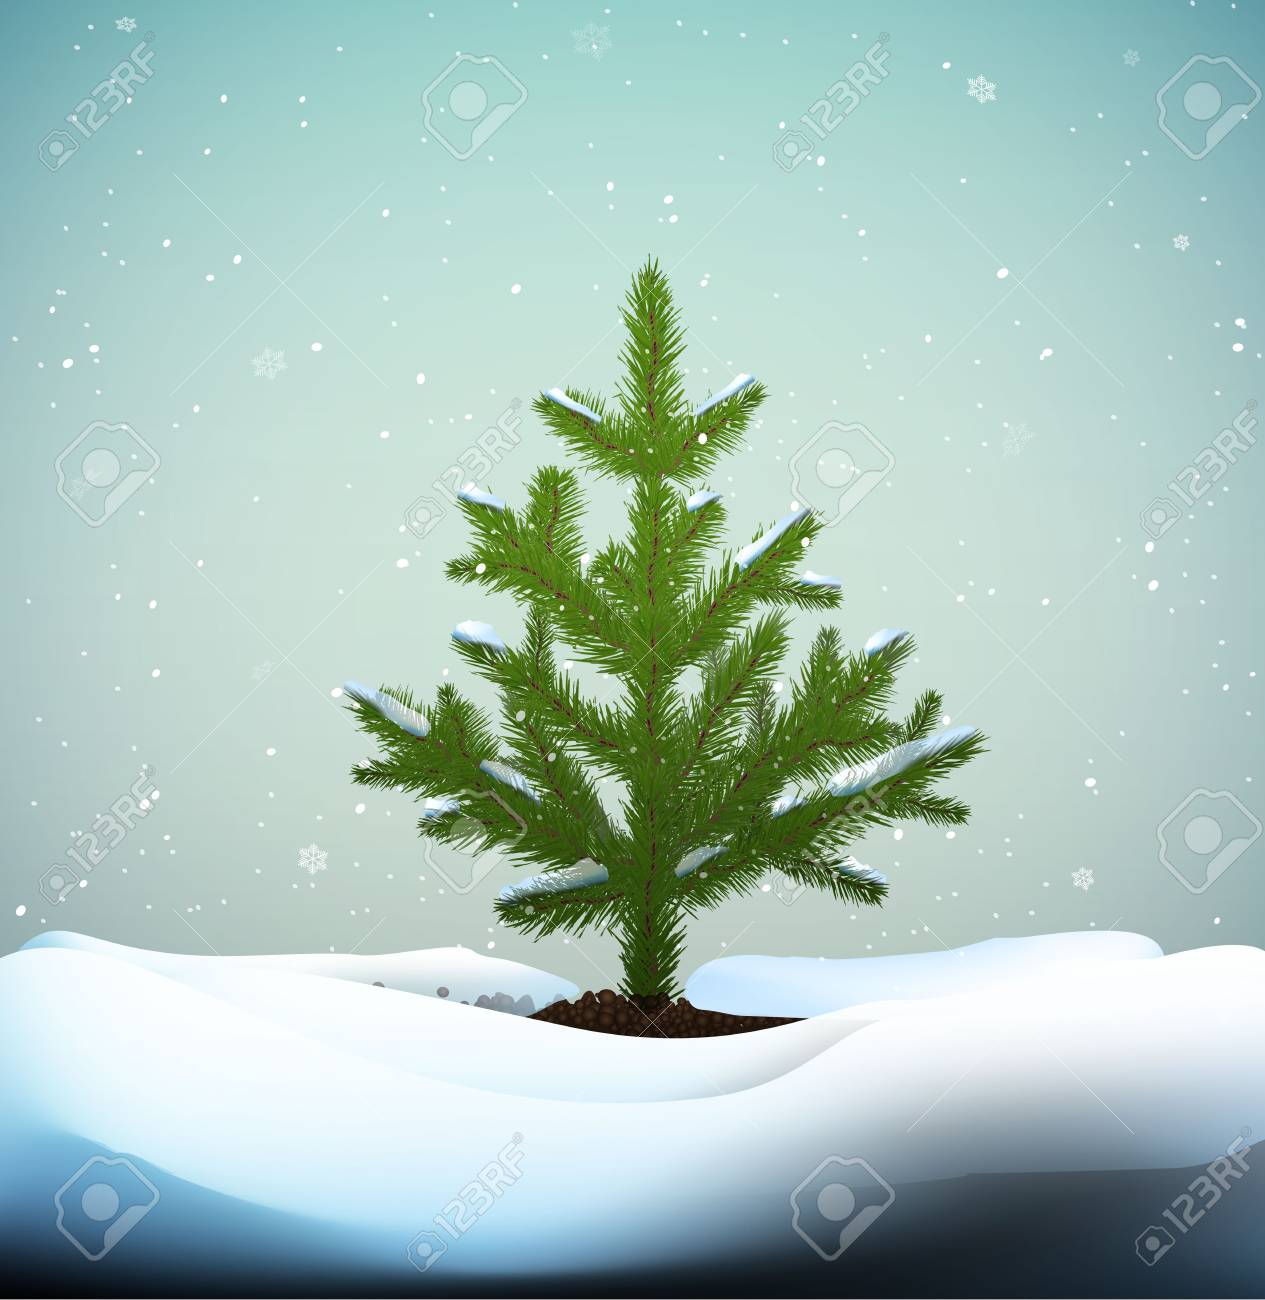 Small Christmas Trees Or Young Fir Tree Growing On Soil In Winter Royalty Free Cliparts Vectors And Stock Illustration Image 127129608